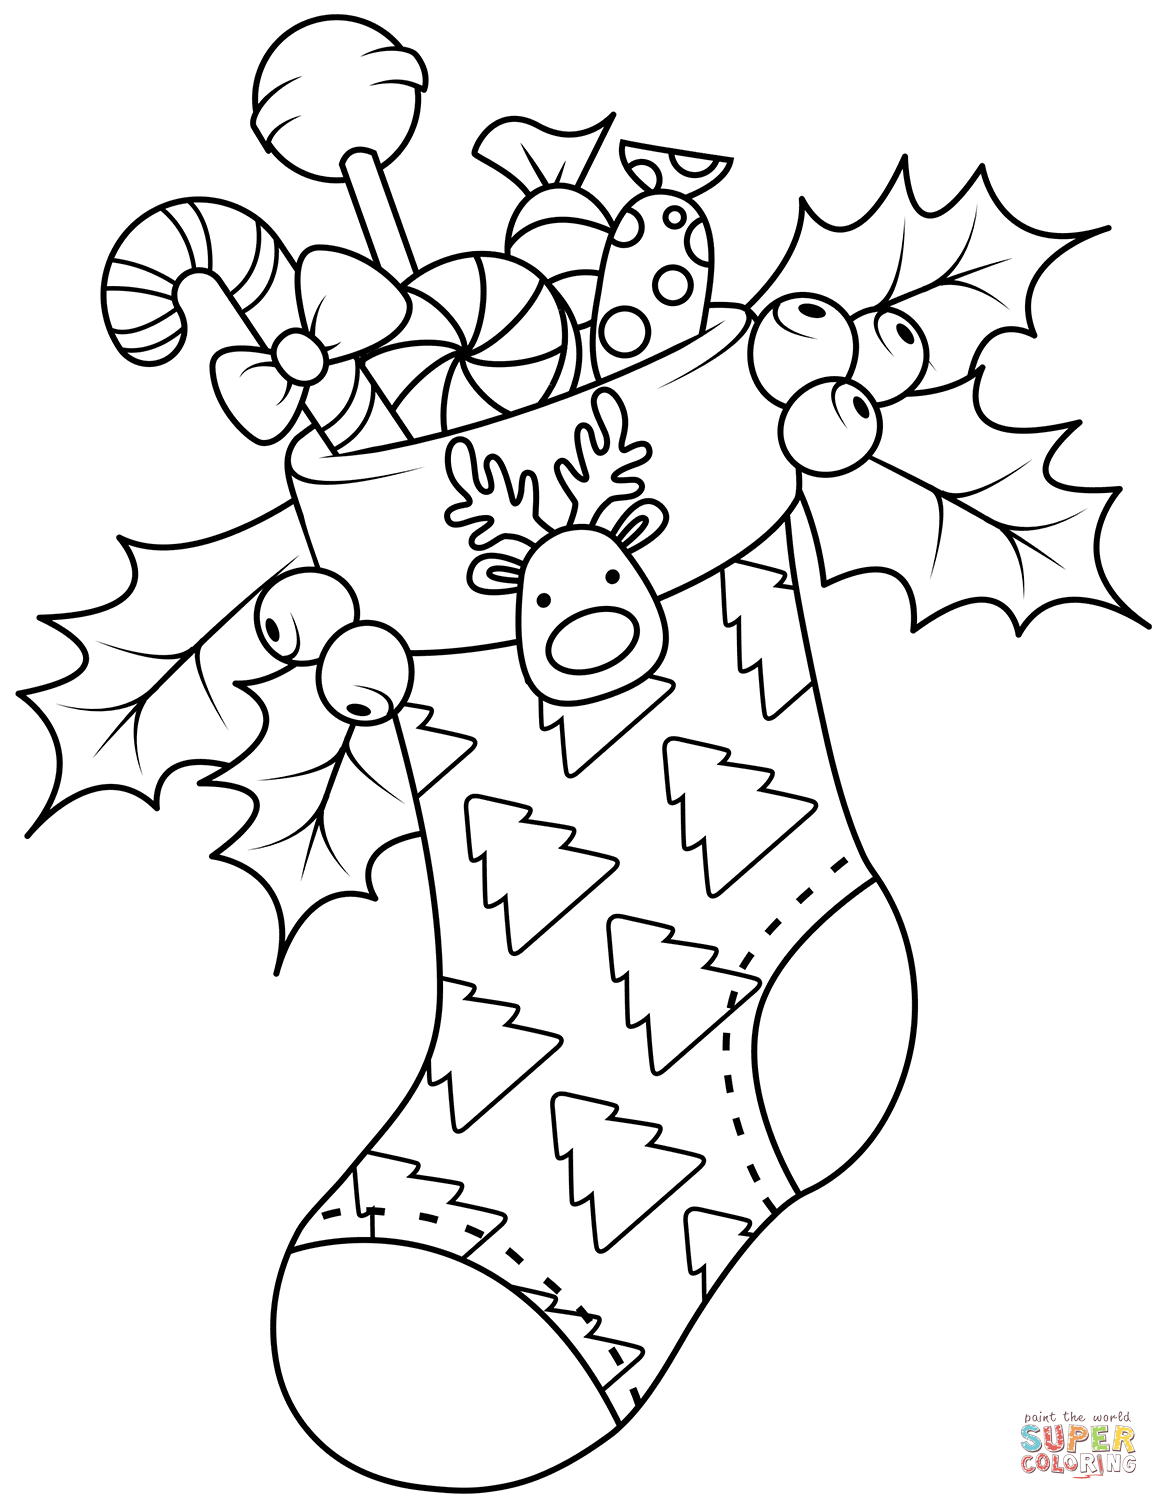 Christmas Stocking coloring page from Christmas Stockings category. Select from ...